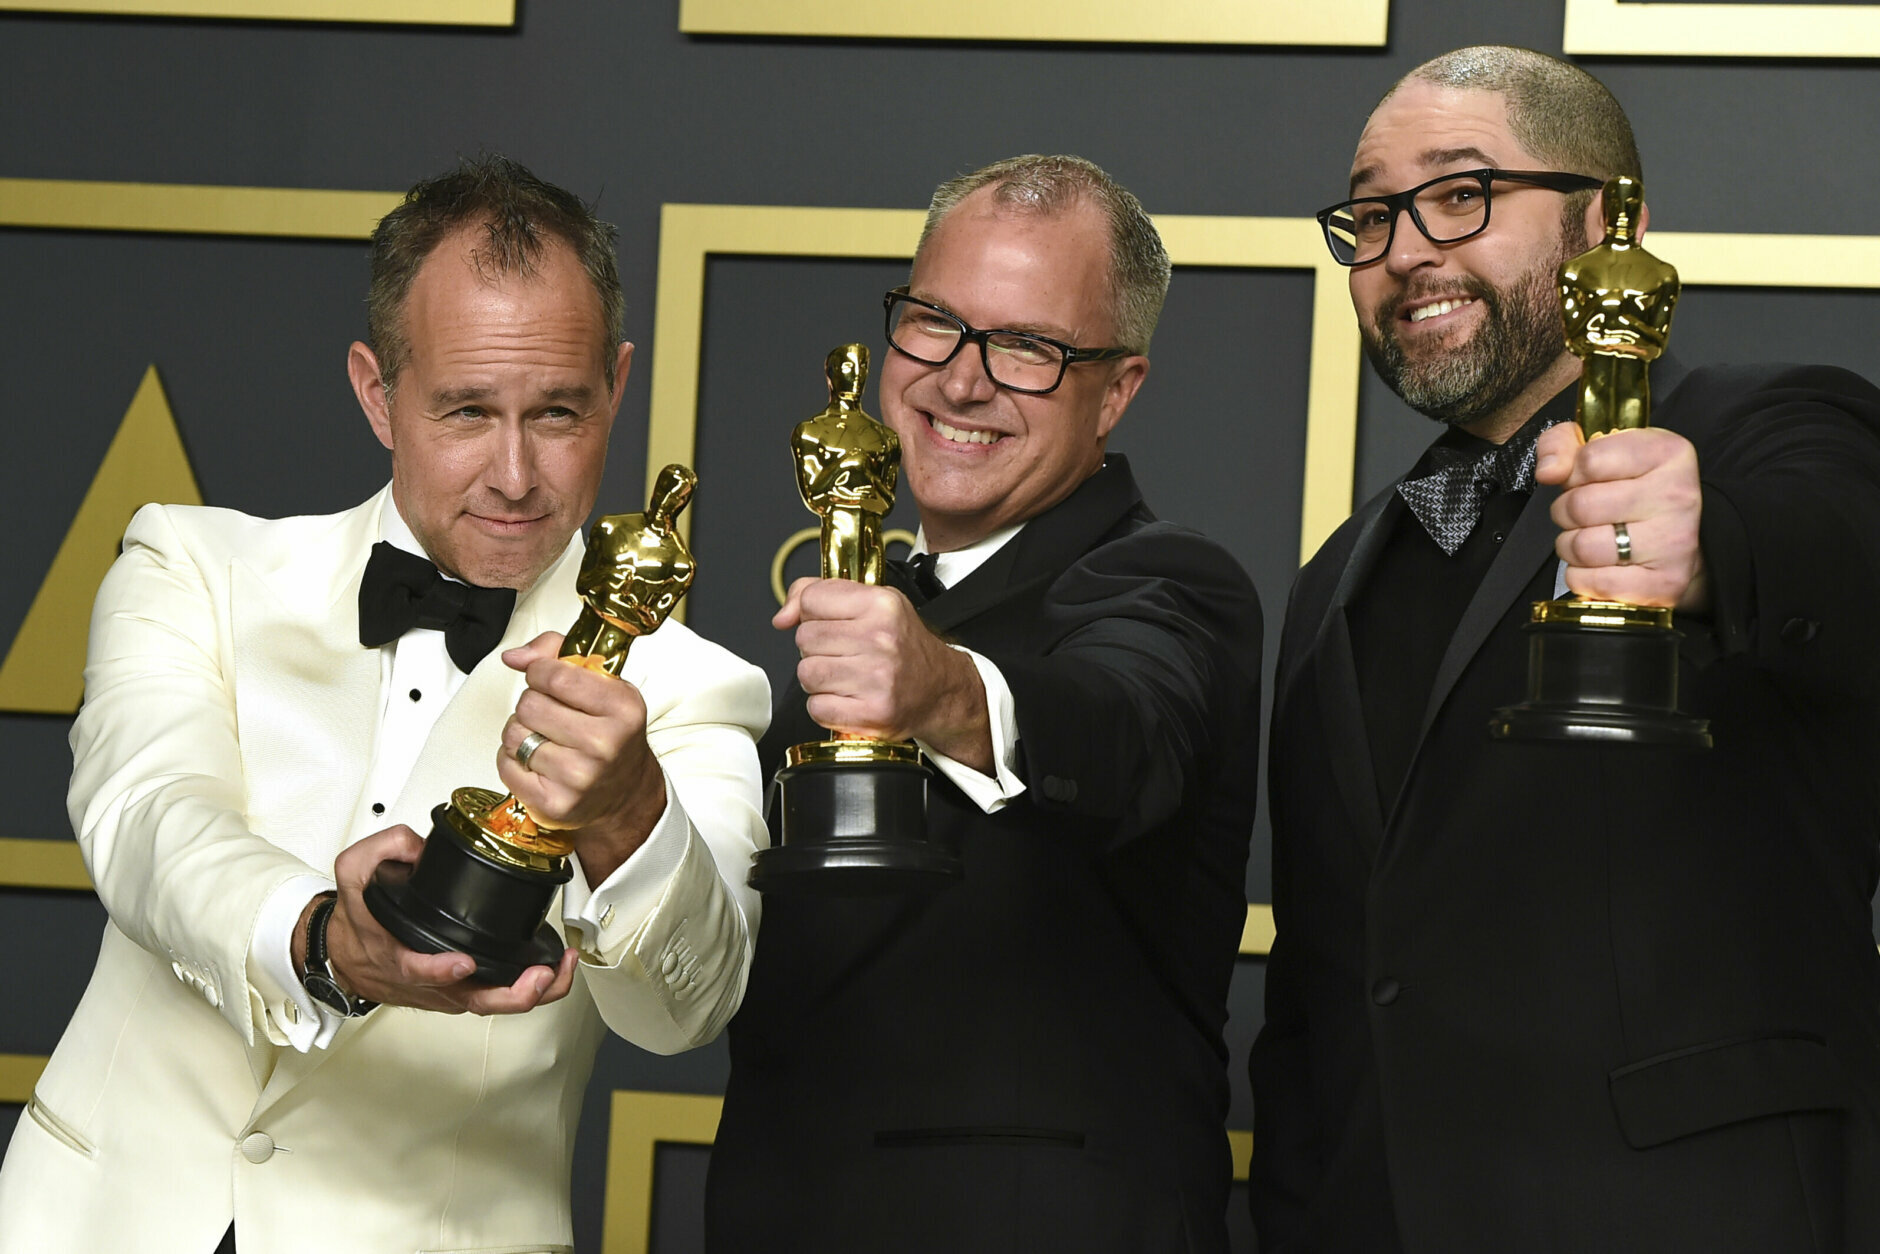 """Jonas Rivera, from left, Mark Nielsen, and Josh Cooley, winners of the award for best animated feature film for """"Toy Story 4"""", pose in the press room at the Oscars on Sunday, Feb. 9, 2020, at the Dolby Theatre in Los Angeles. (Photo by Jordan Strauss/Invision/AP)"""